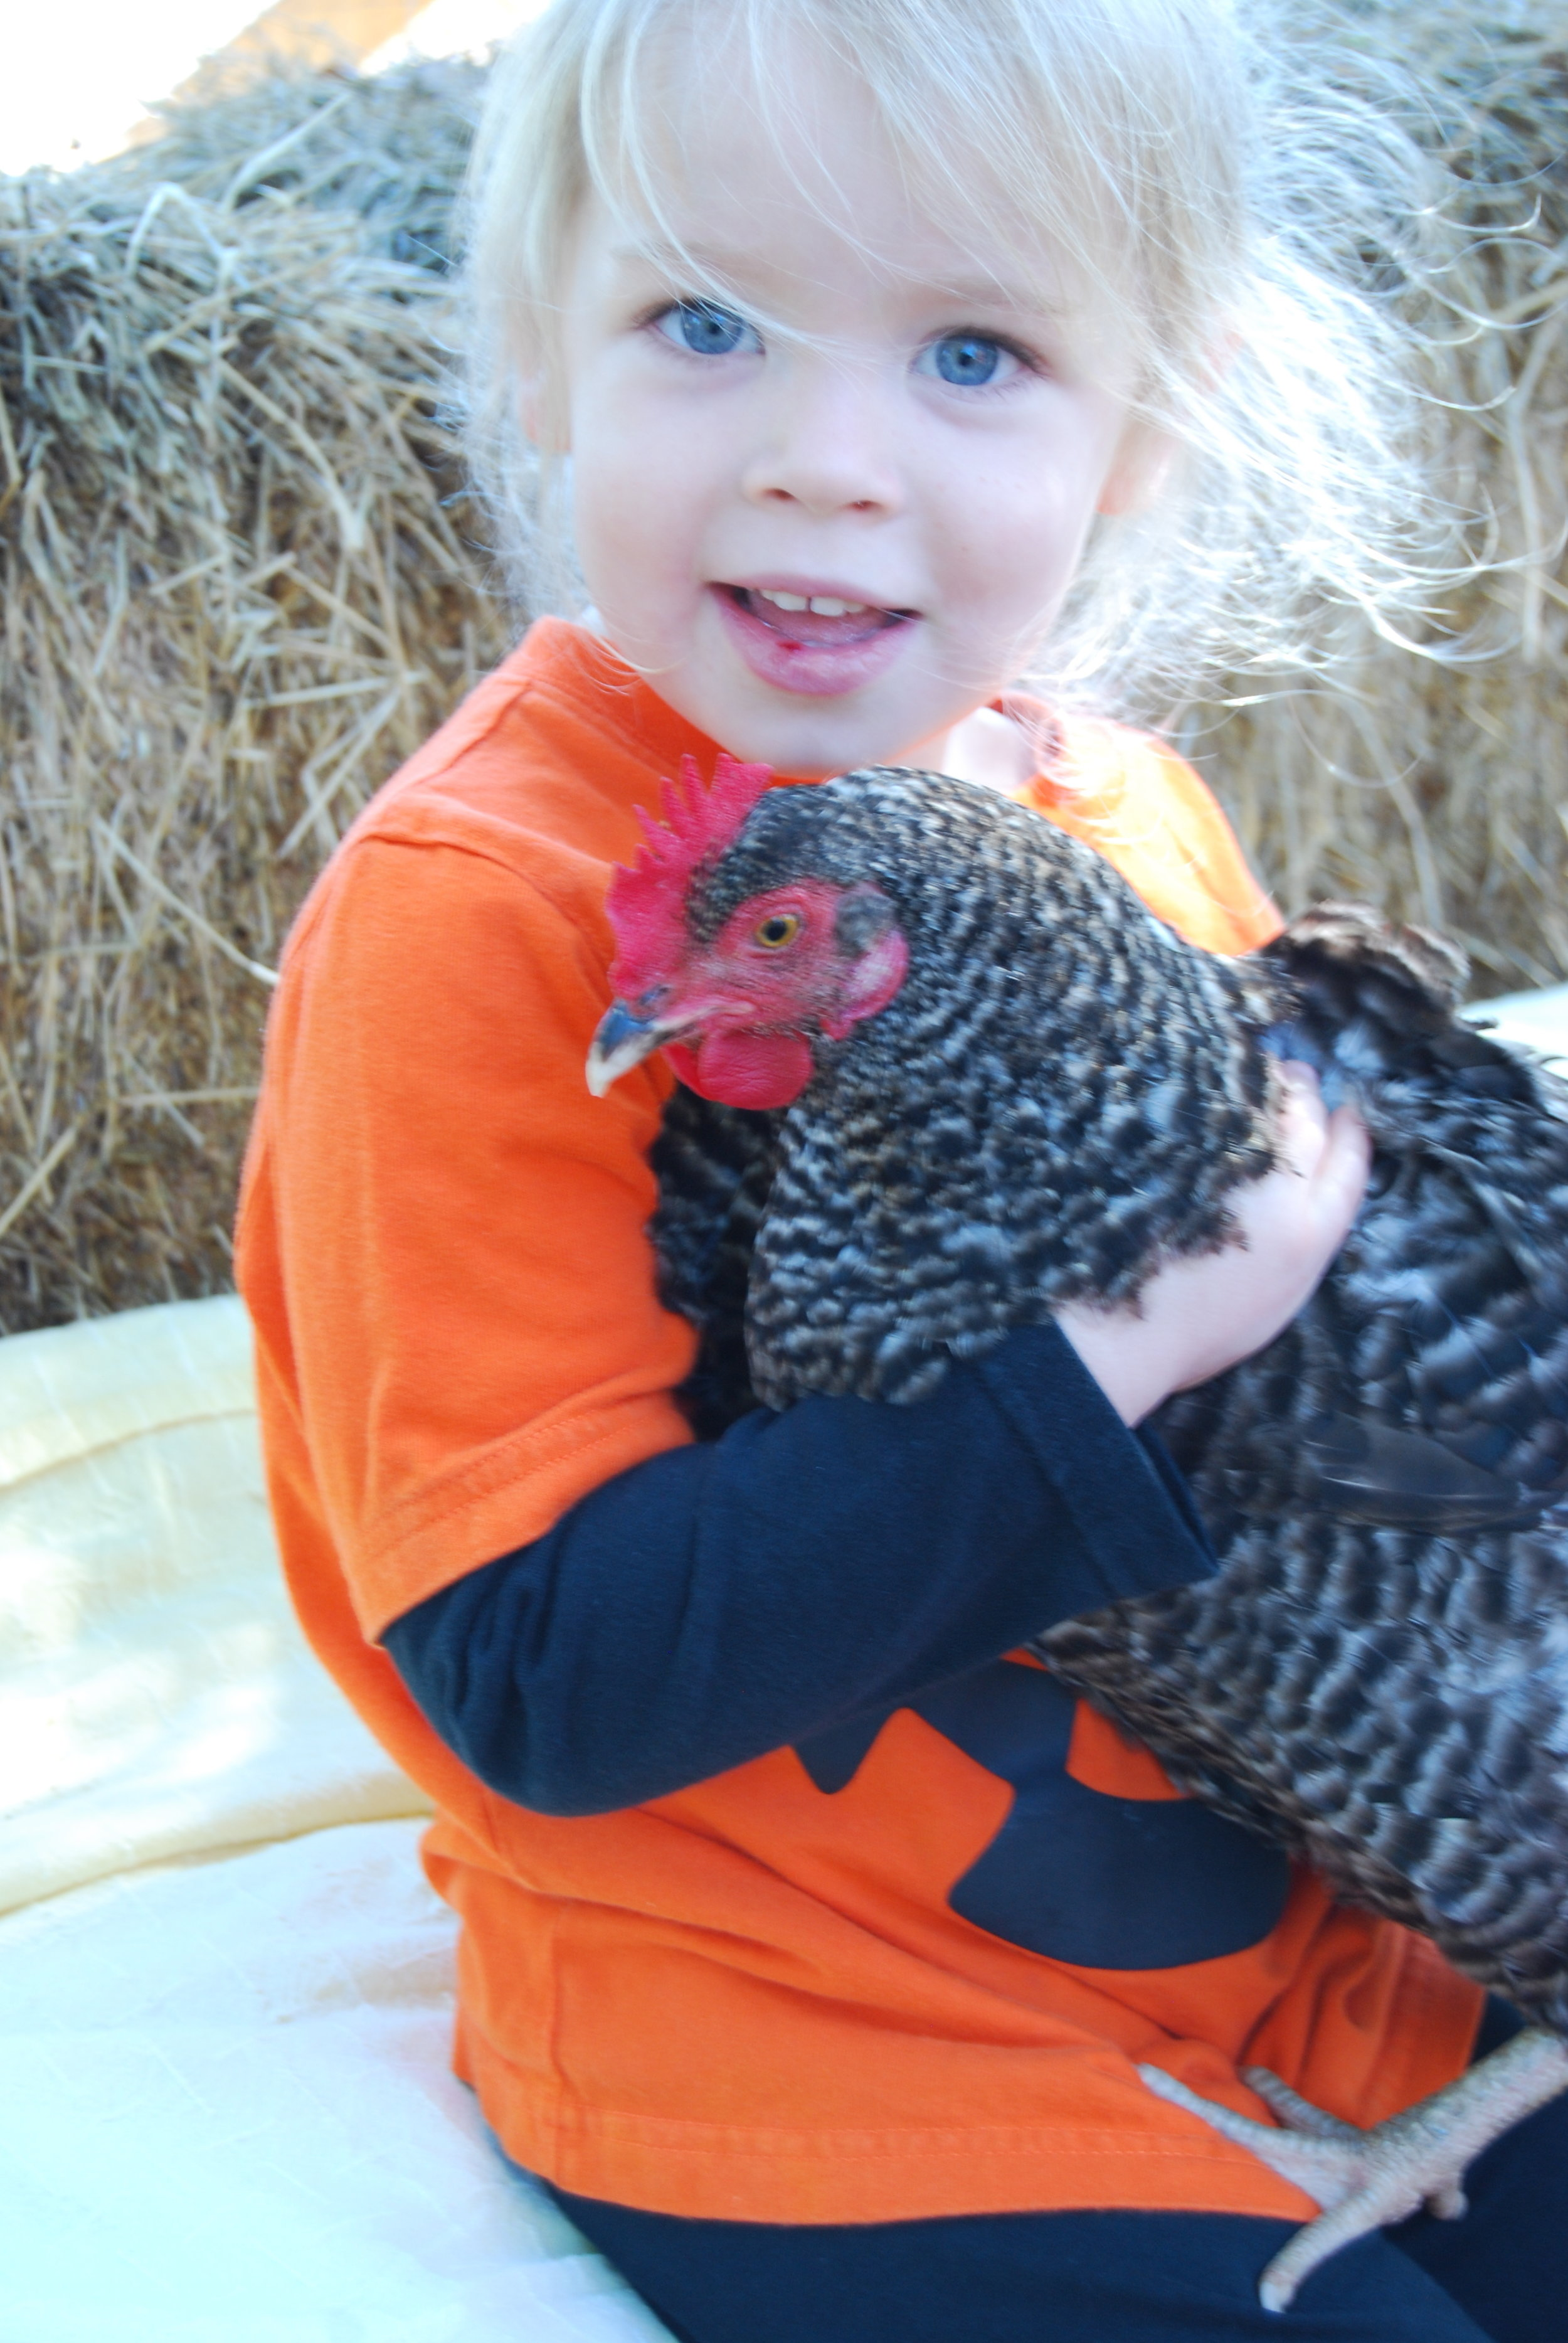 It's a chicken and my oldest daughter.